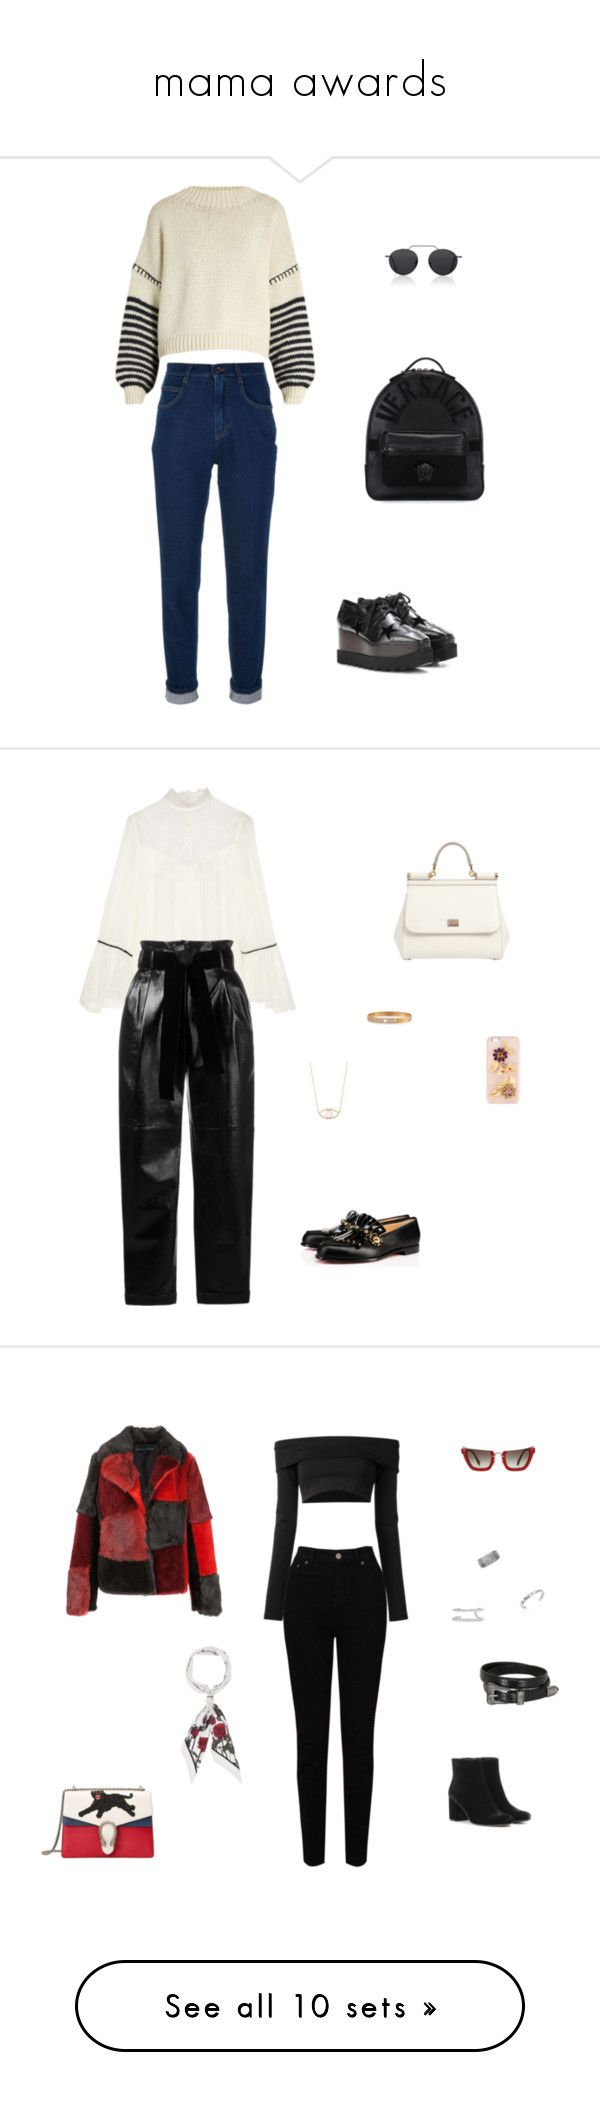 """mama awards"" by leafmarie ❤ liked on Polyvore featuring Dolce&Gabbana, Sportmax, Versace, STELLA McCARTNEY, Illesteva, Alice + Olivia, Philosophy di Lorenzo Serafini, Christian Louboutin, Messika and Feathered Soul"